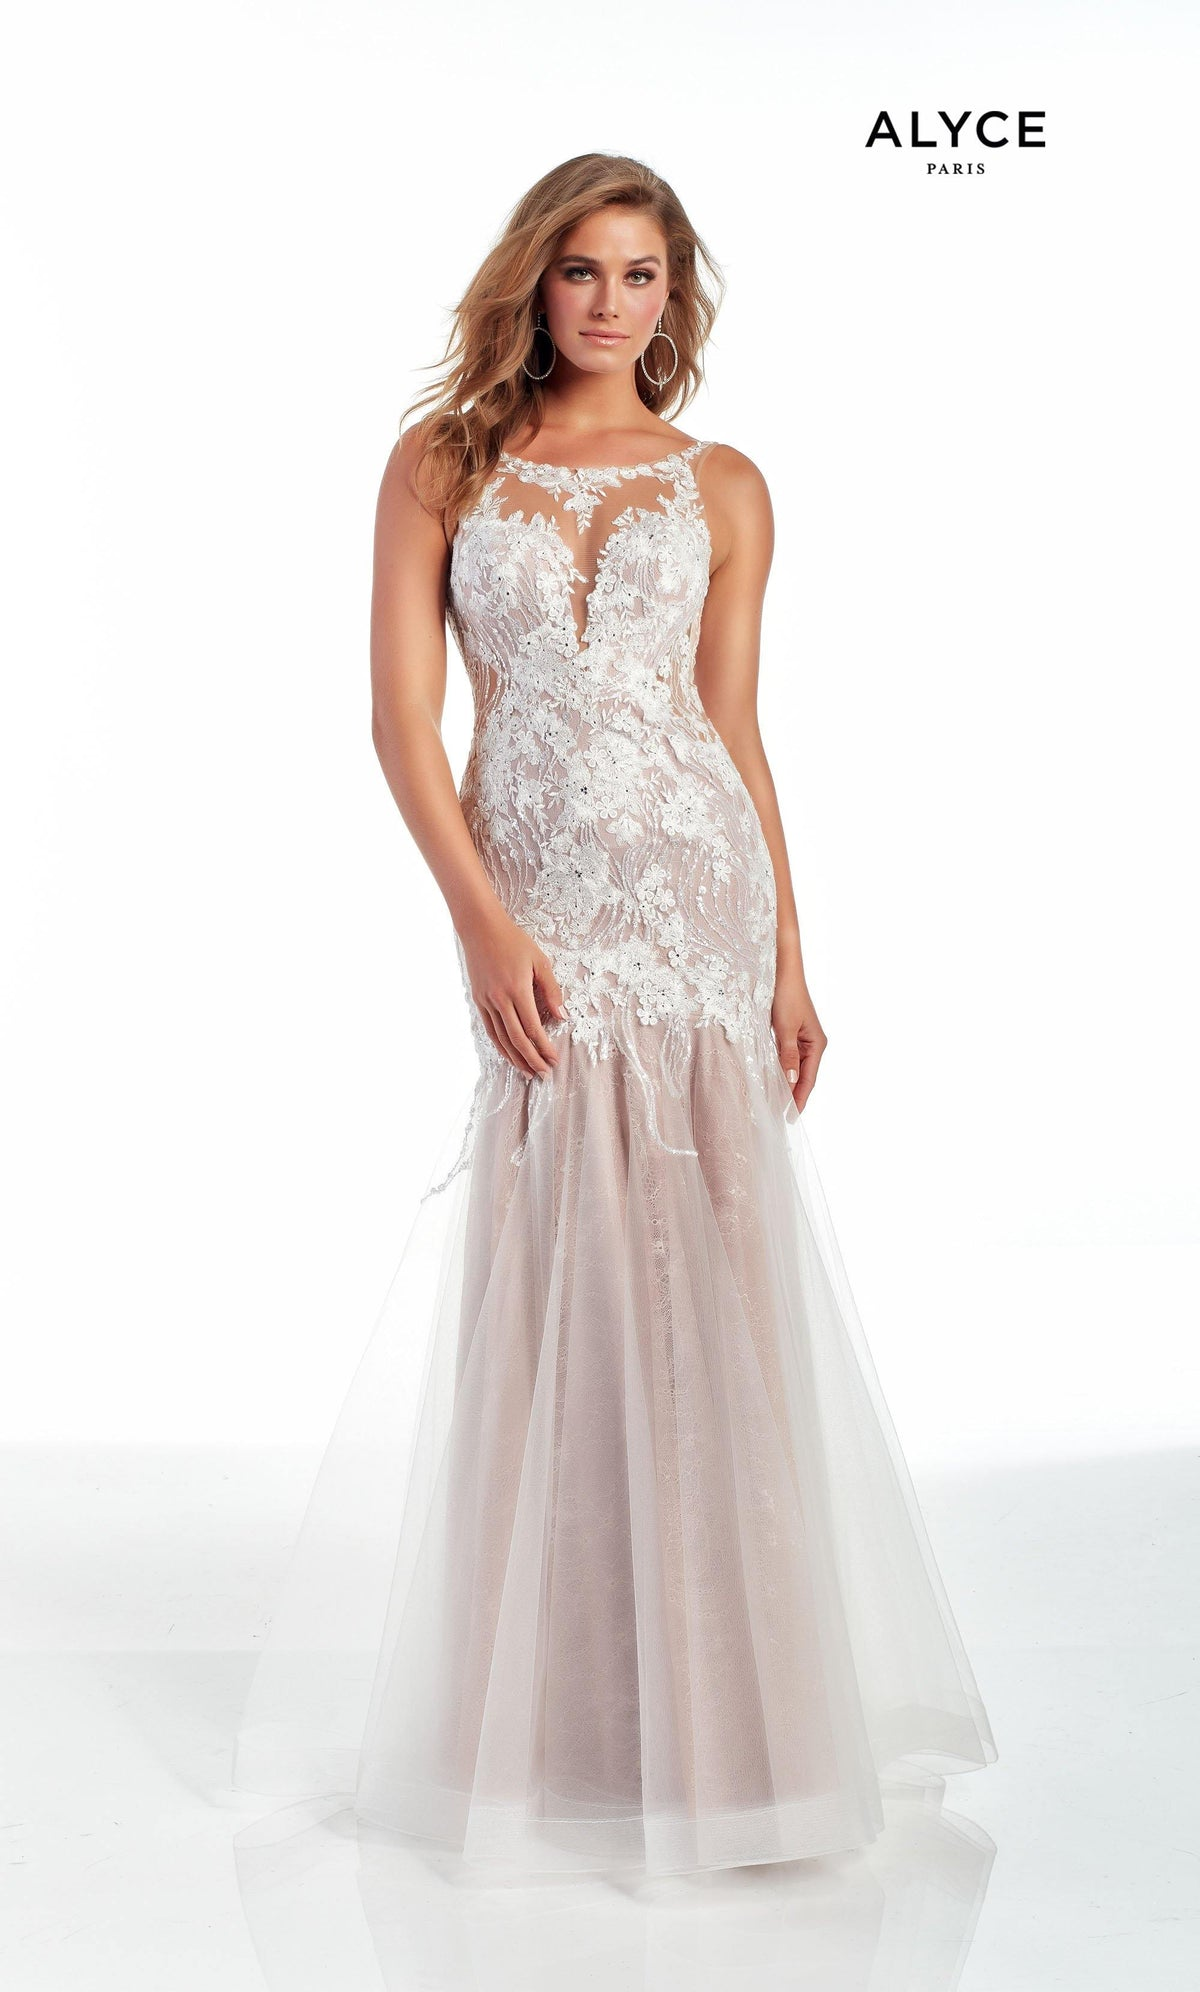 Ivory-Rose tulle-lace mermaid prom dress with an illusion neckline